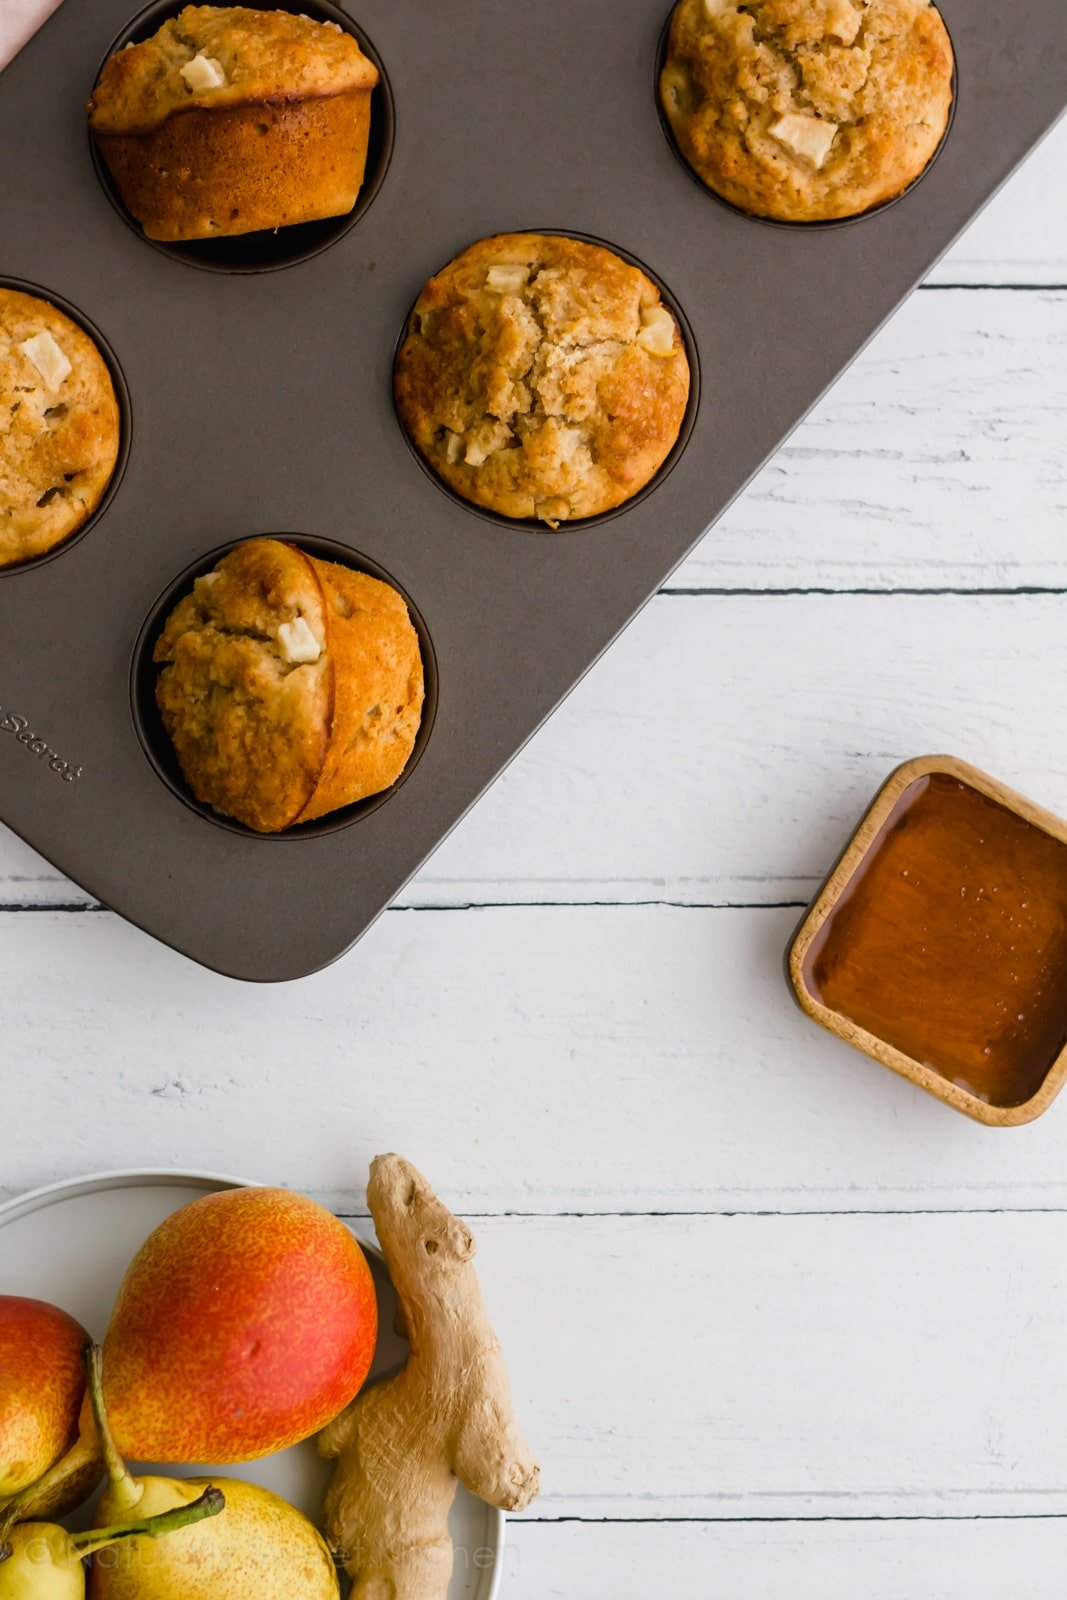 These ginger pear muffins are an quick and easy on-the-go breakfast. Packed with fresh fruit and fibre, this muffin recipe will keep you going through to lunch. Get the recipe and more refined sugar free desserts at naturallysweetkitchen.com #naturallysweetkitchen #refinedsugarfree #muffins #easyrecipe #breakfast